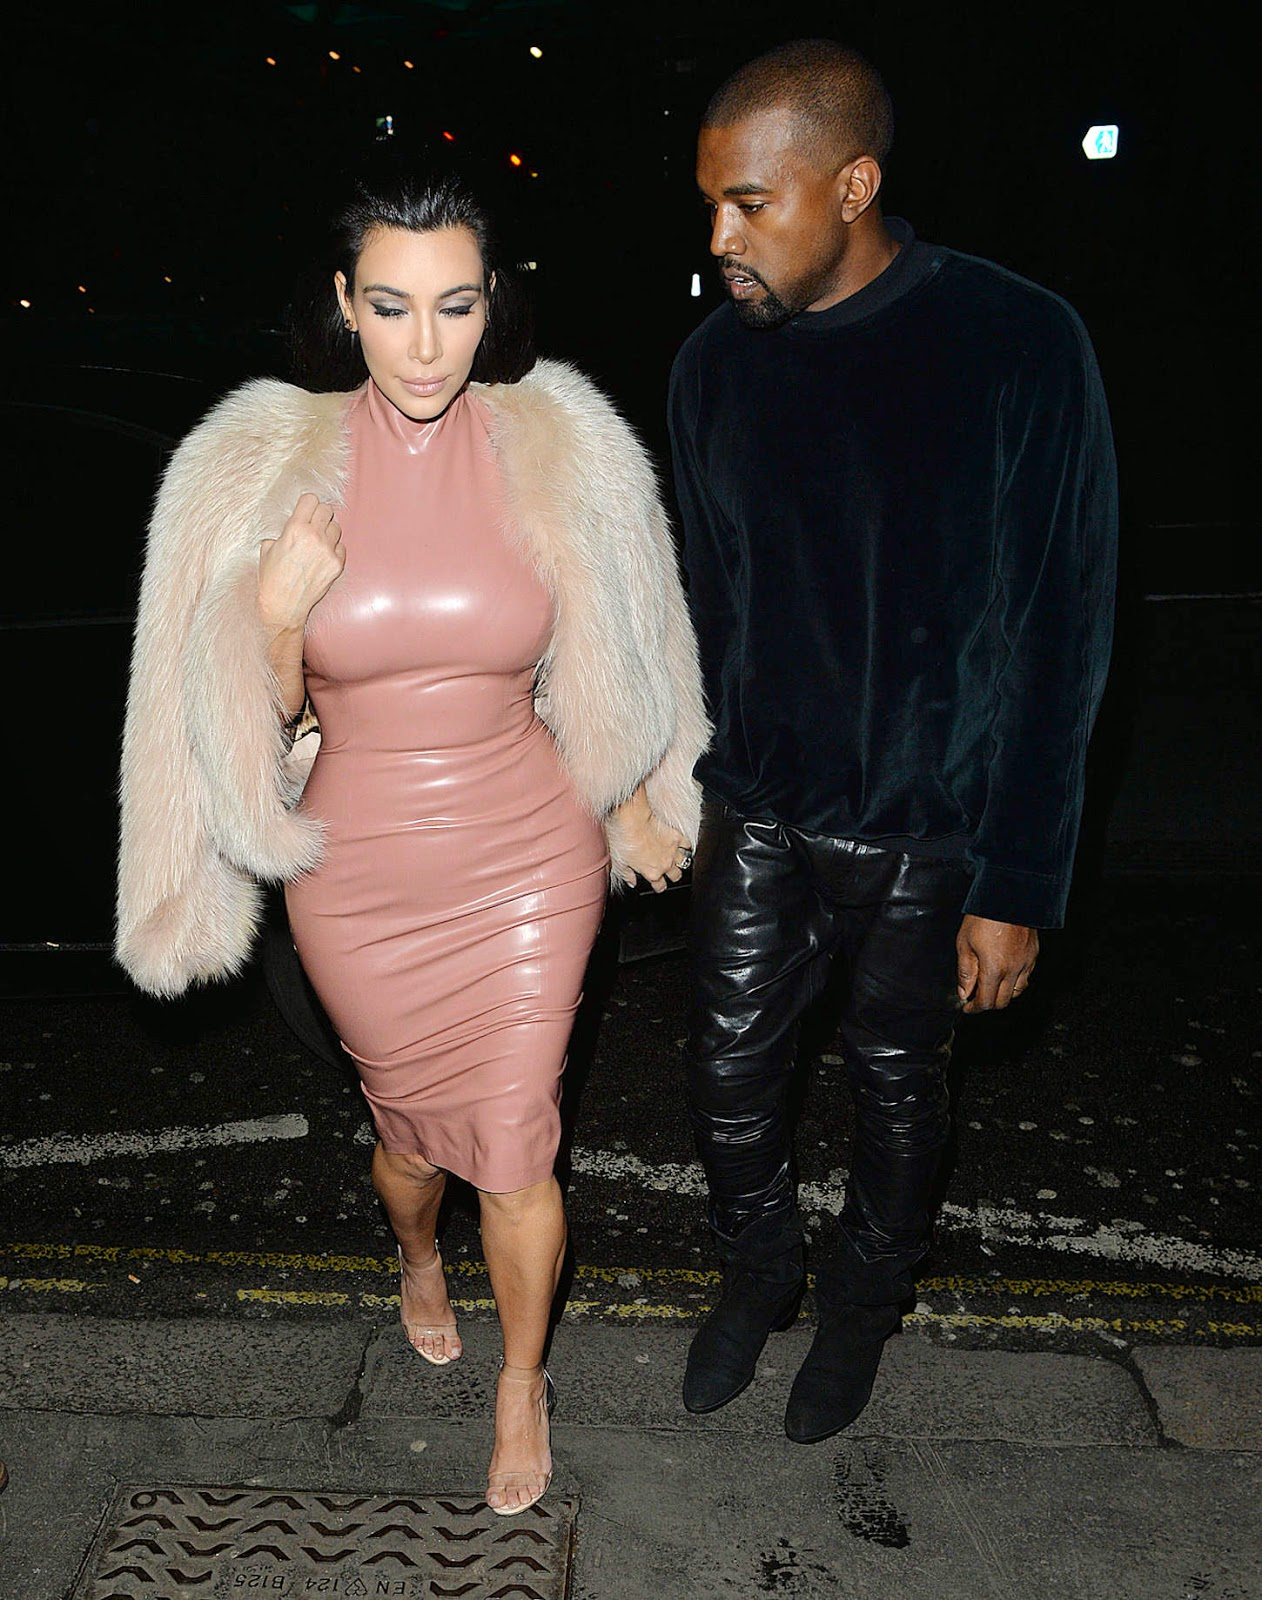 Kim Kardashian in a pink latex dress out and about in London